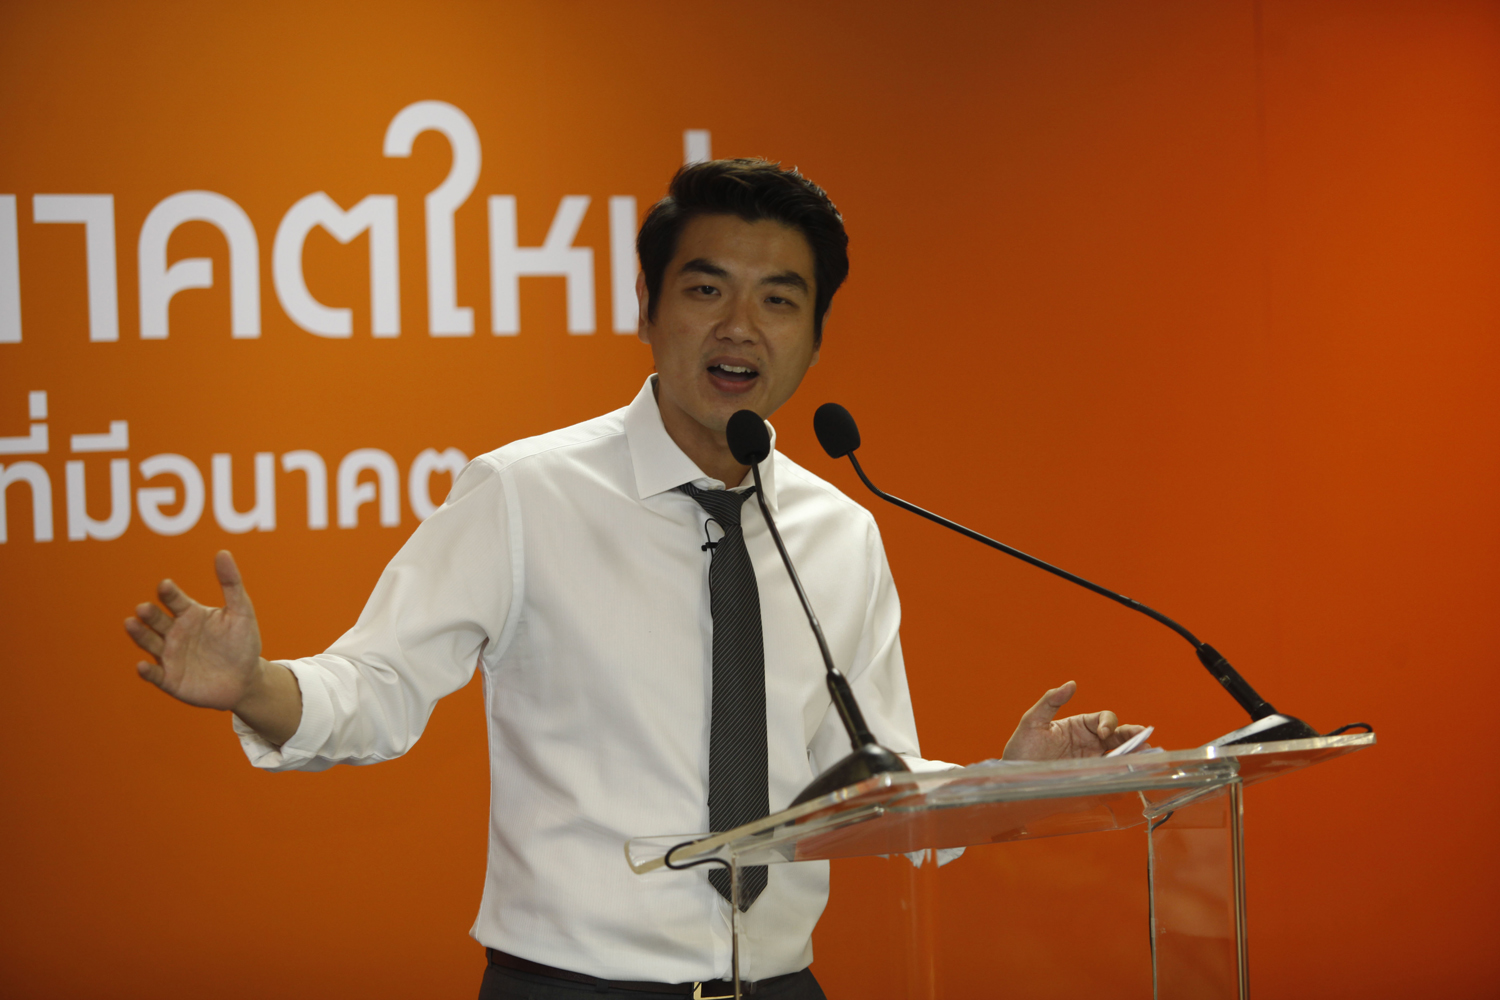 Future Forward Party secretary-general Piyabutr Saengkanokkul has warned of grim consequences if the party is disbanded over allegations related to the so-called Illuminati group. (Bangkok Post photo)